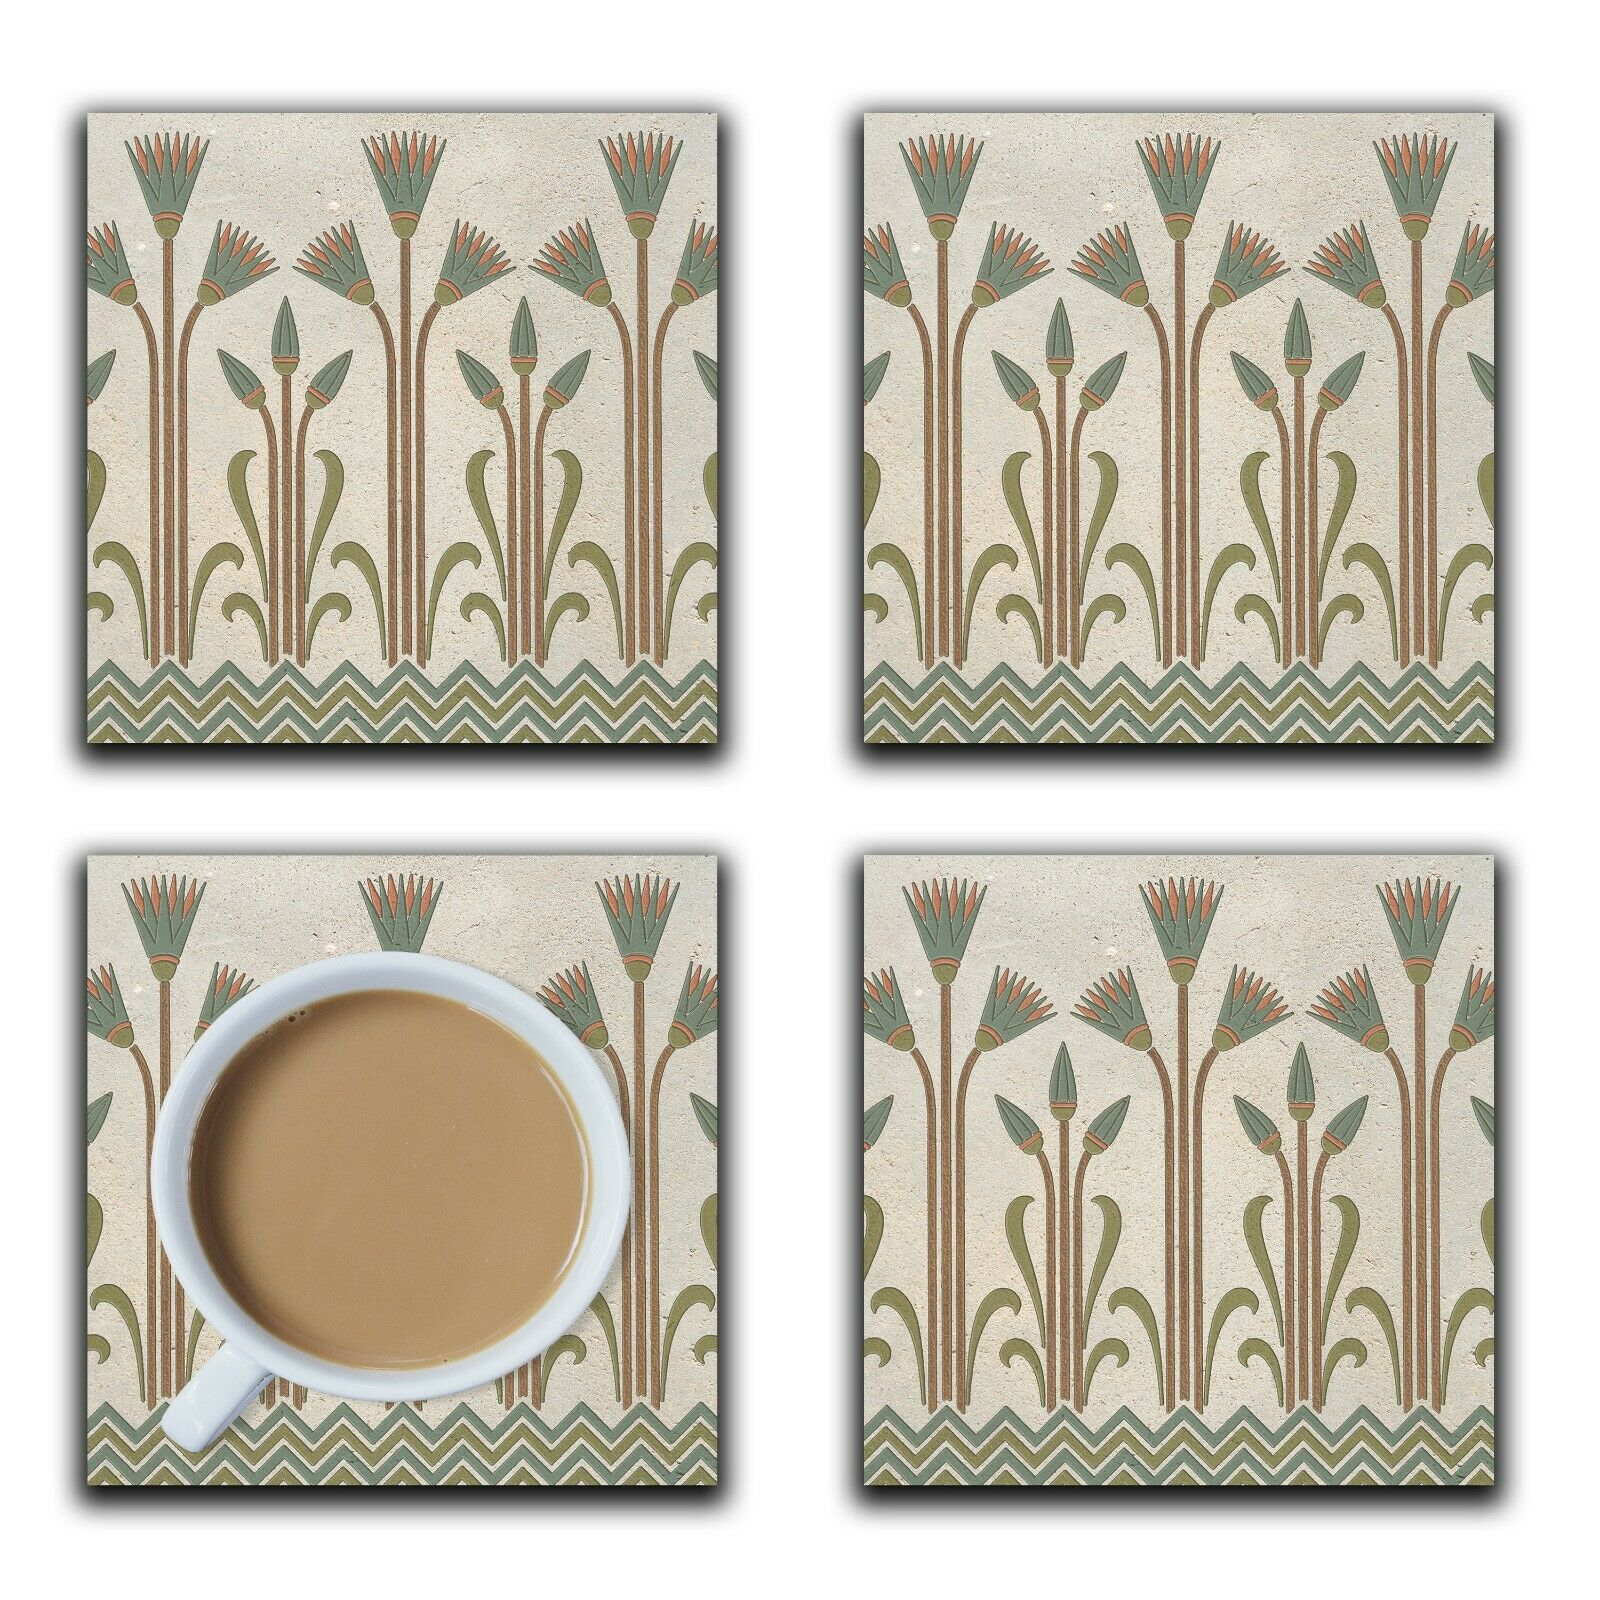 Embossi Printed Egyptian Lotus Sandstone Pattern, wood or ceramic tile, set of 4